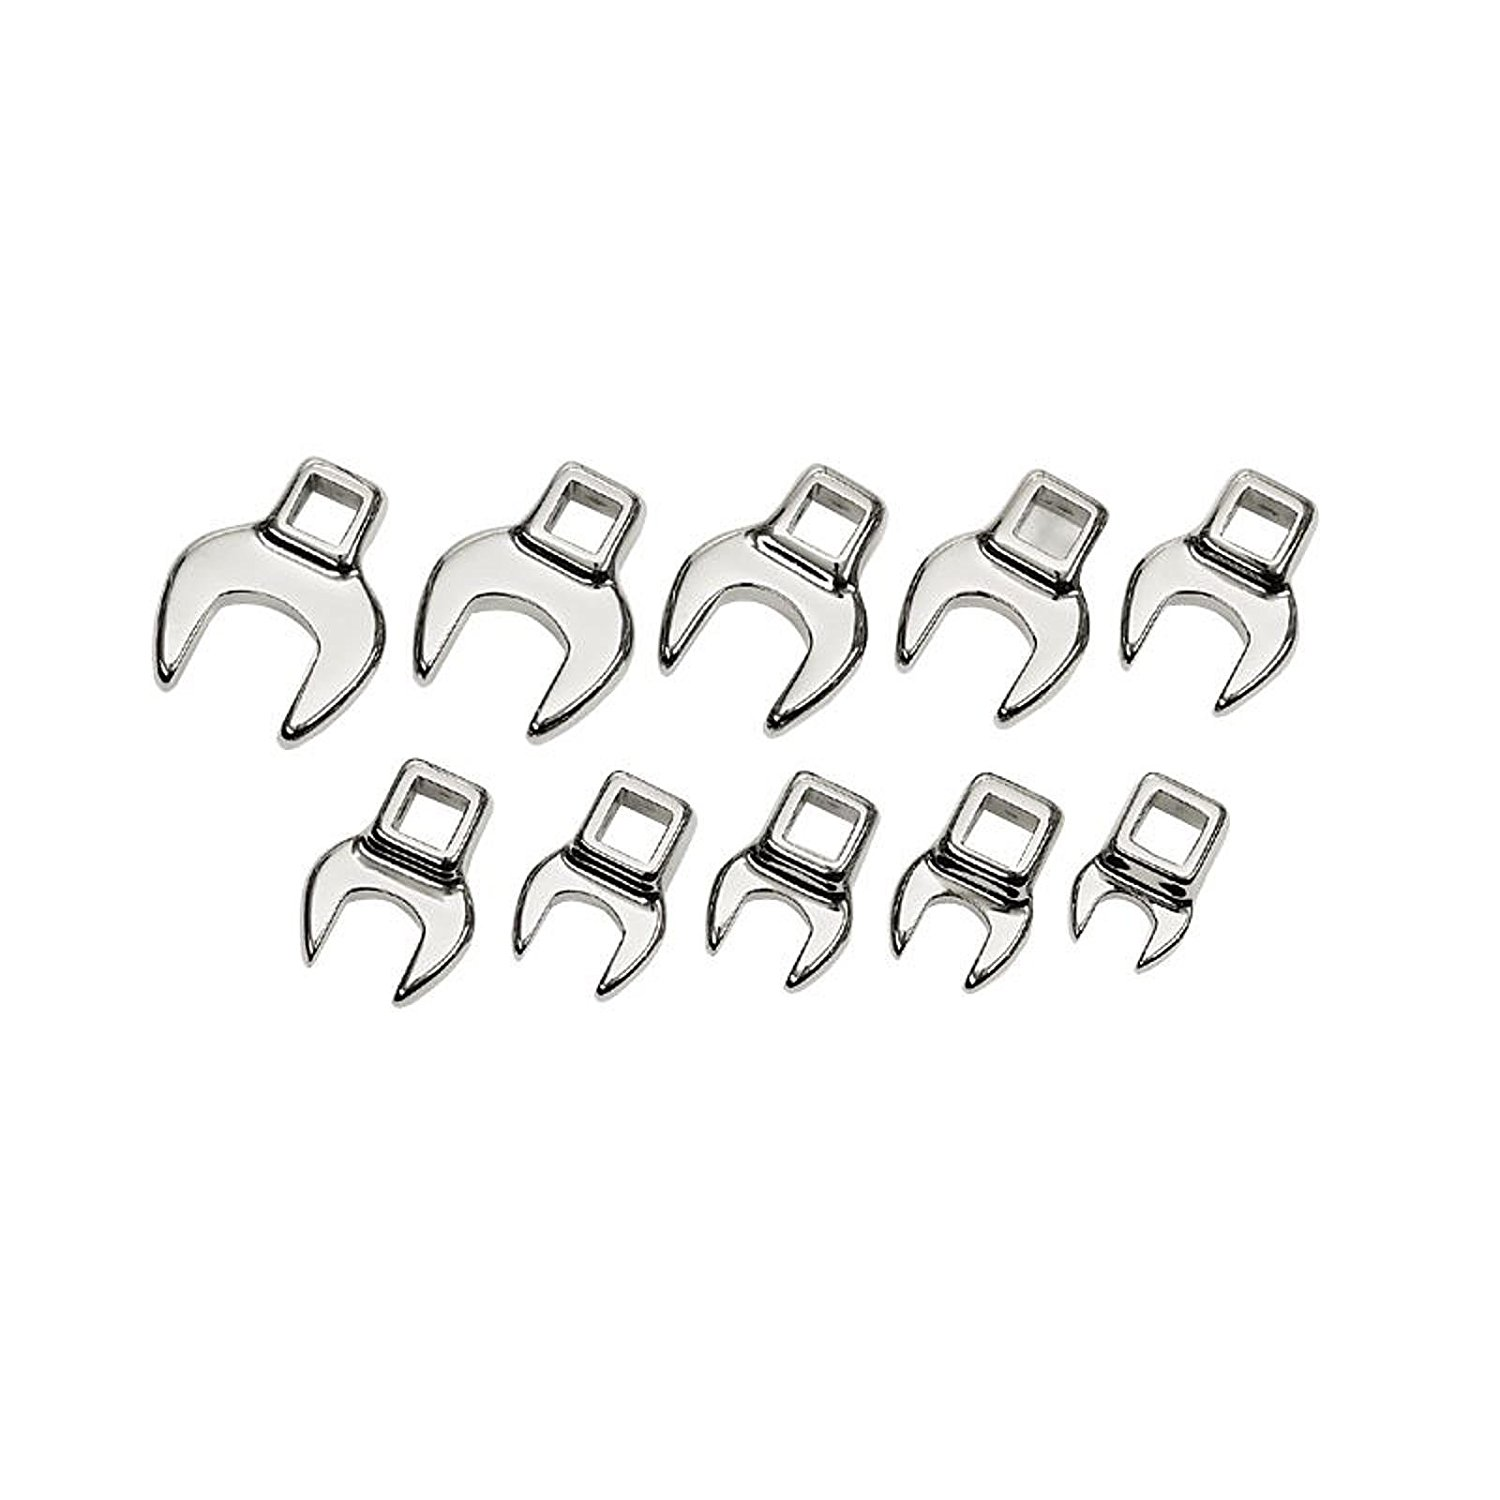 Craftsman 10 Piece Metric Crowfoot Wrench Set, 9-4363